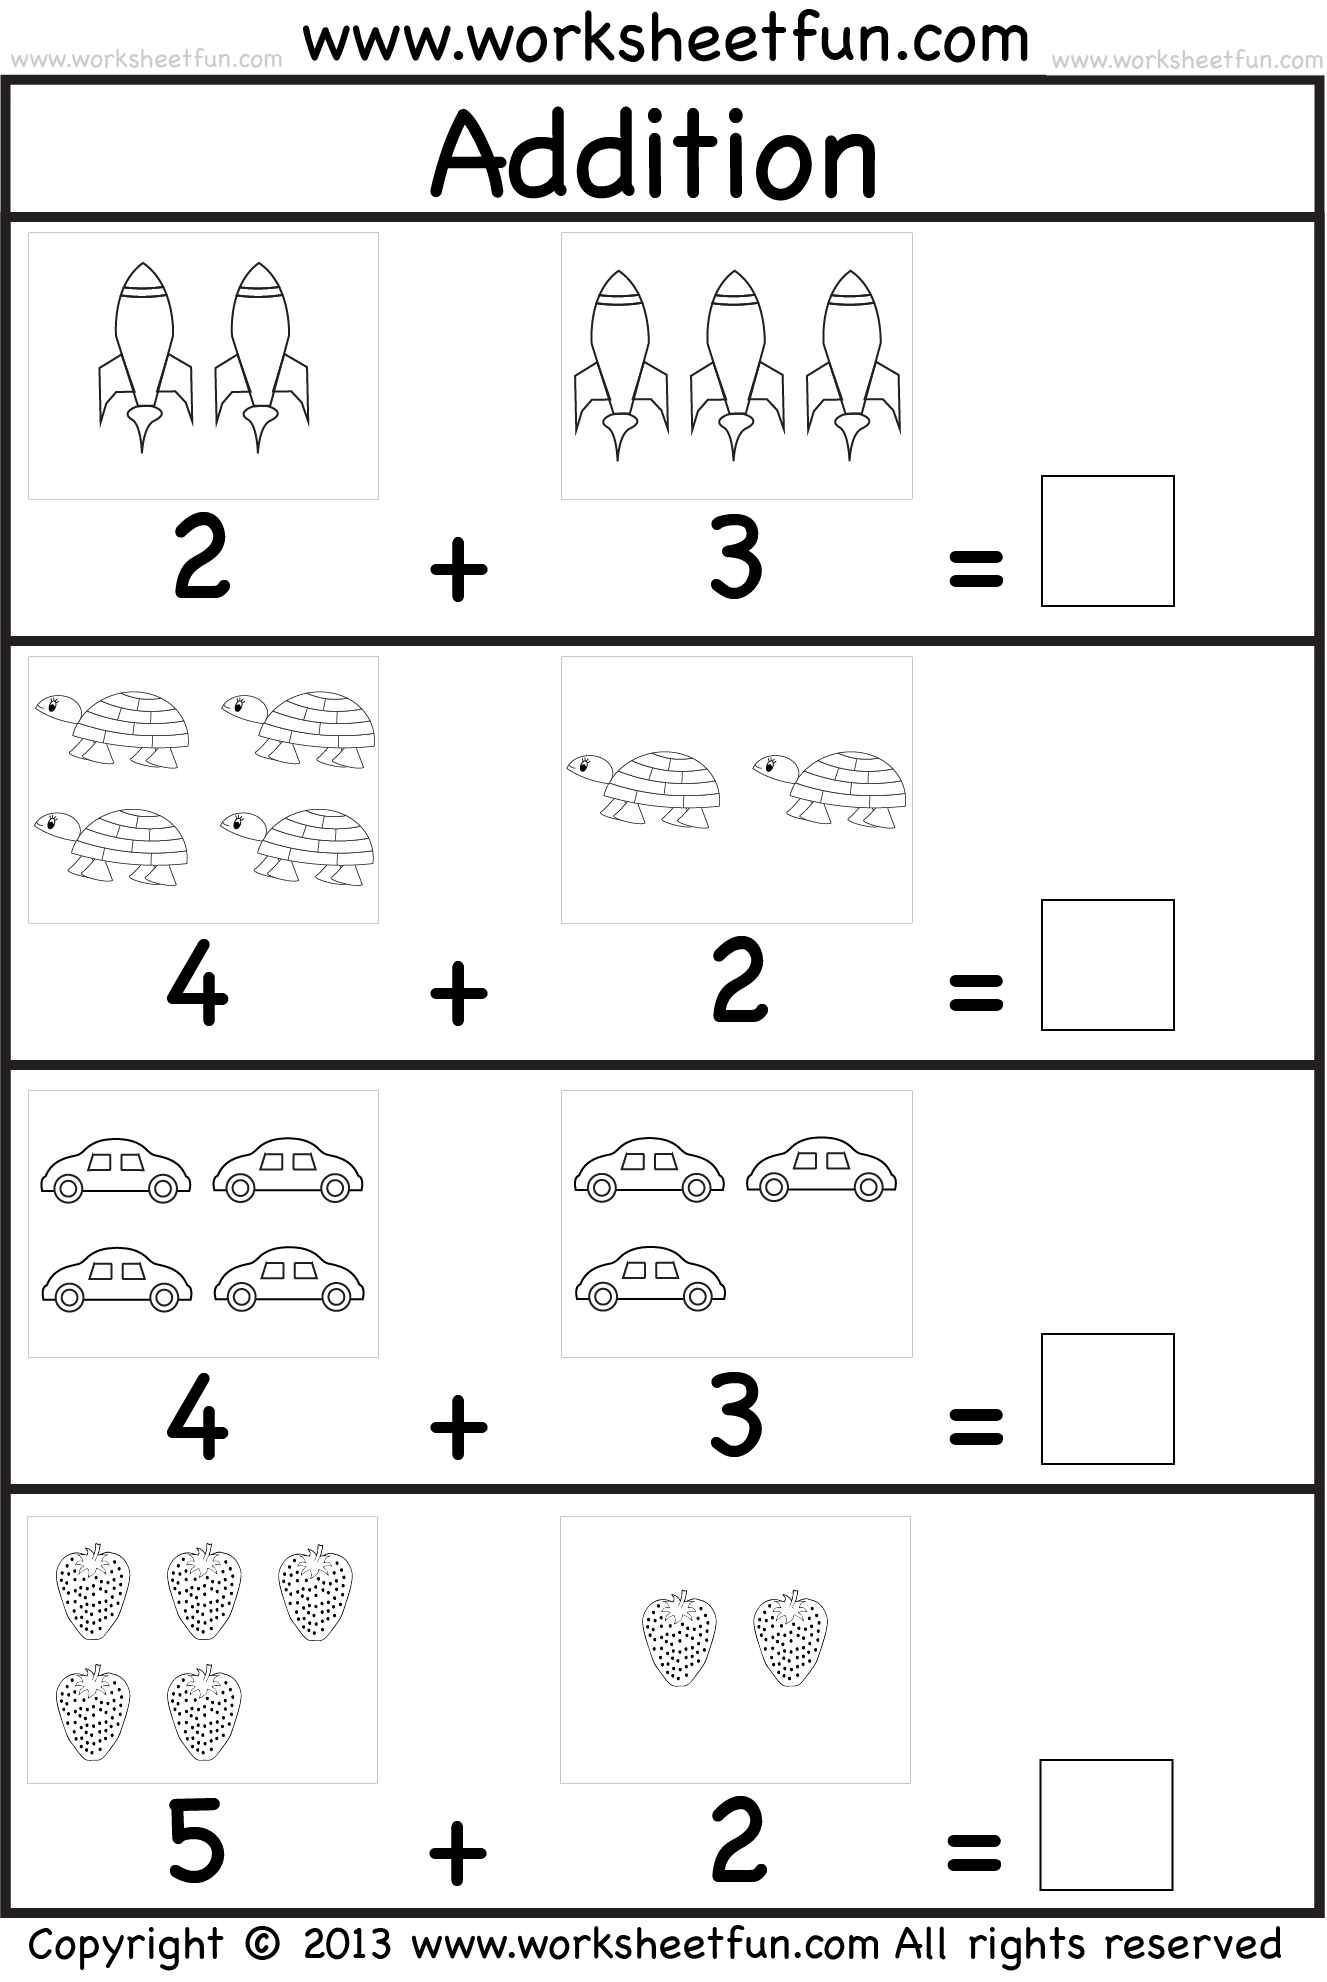 addition worksheet This site has great free worksheets for – Free Printable Maths Worksheets for Kindergarten